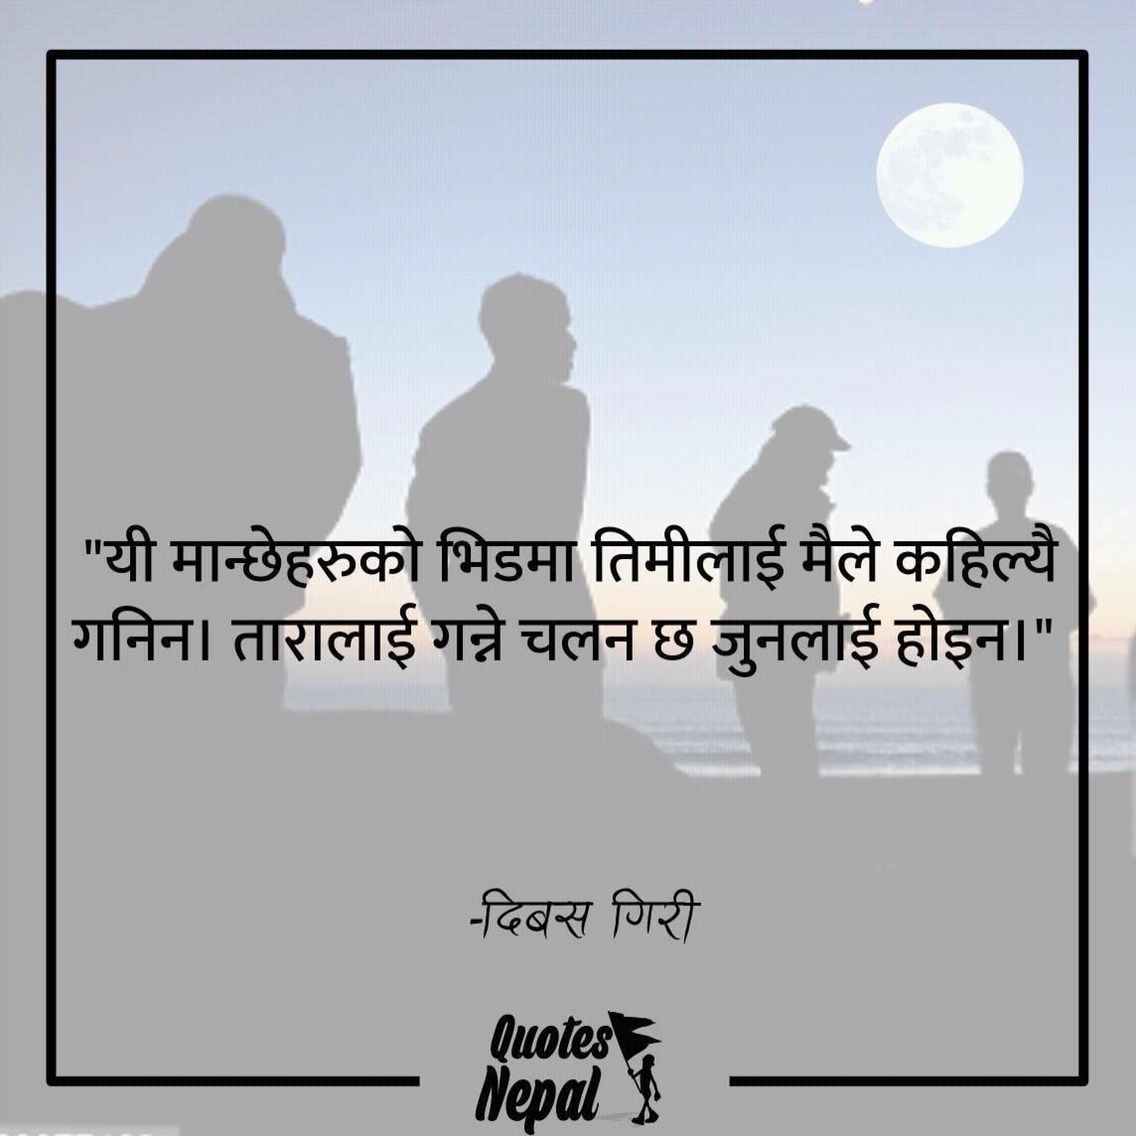 A Quote In Nepali Quotes Pinterest Love Quotes Friendship